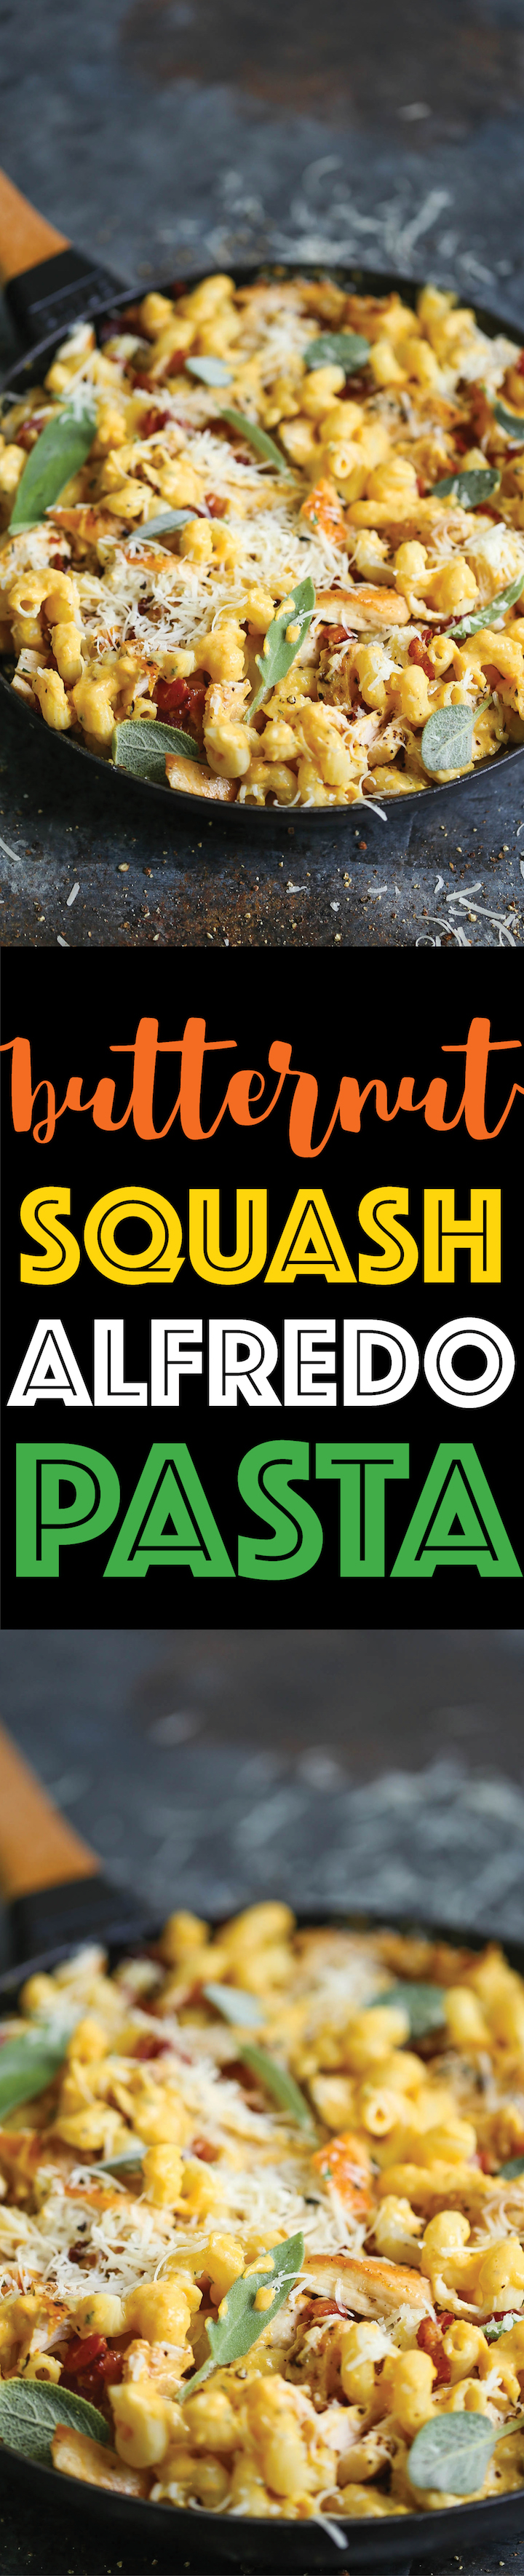 Butternut Squash Alfredo Pasta - Is there anything more cozy in the middle of Fall? And this alfredo sauce is made completely FROM SCRATCH in less than 30!